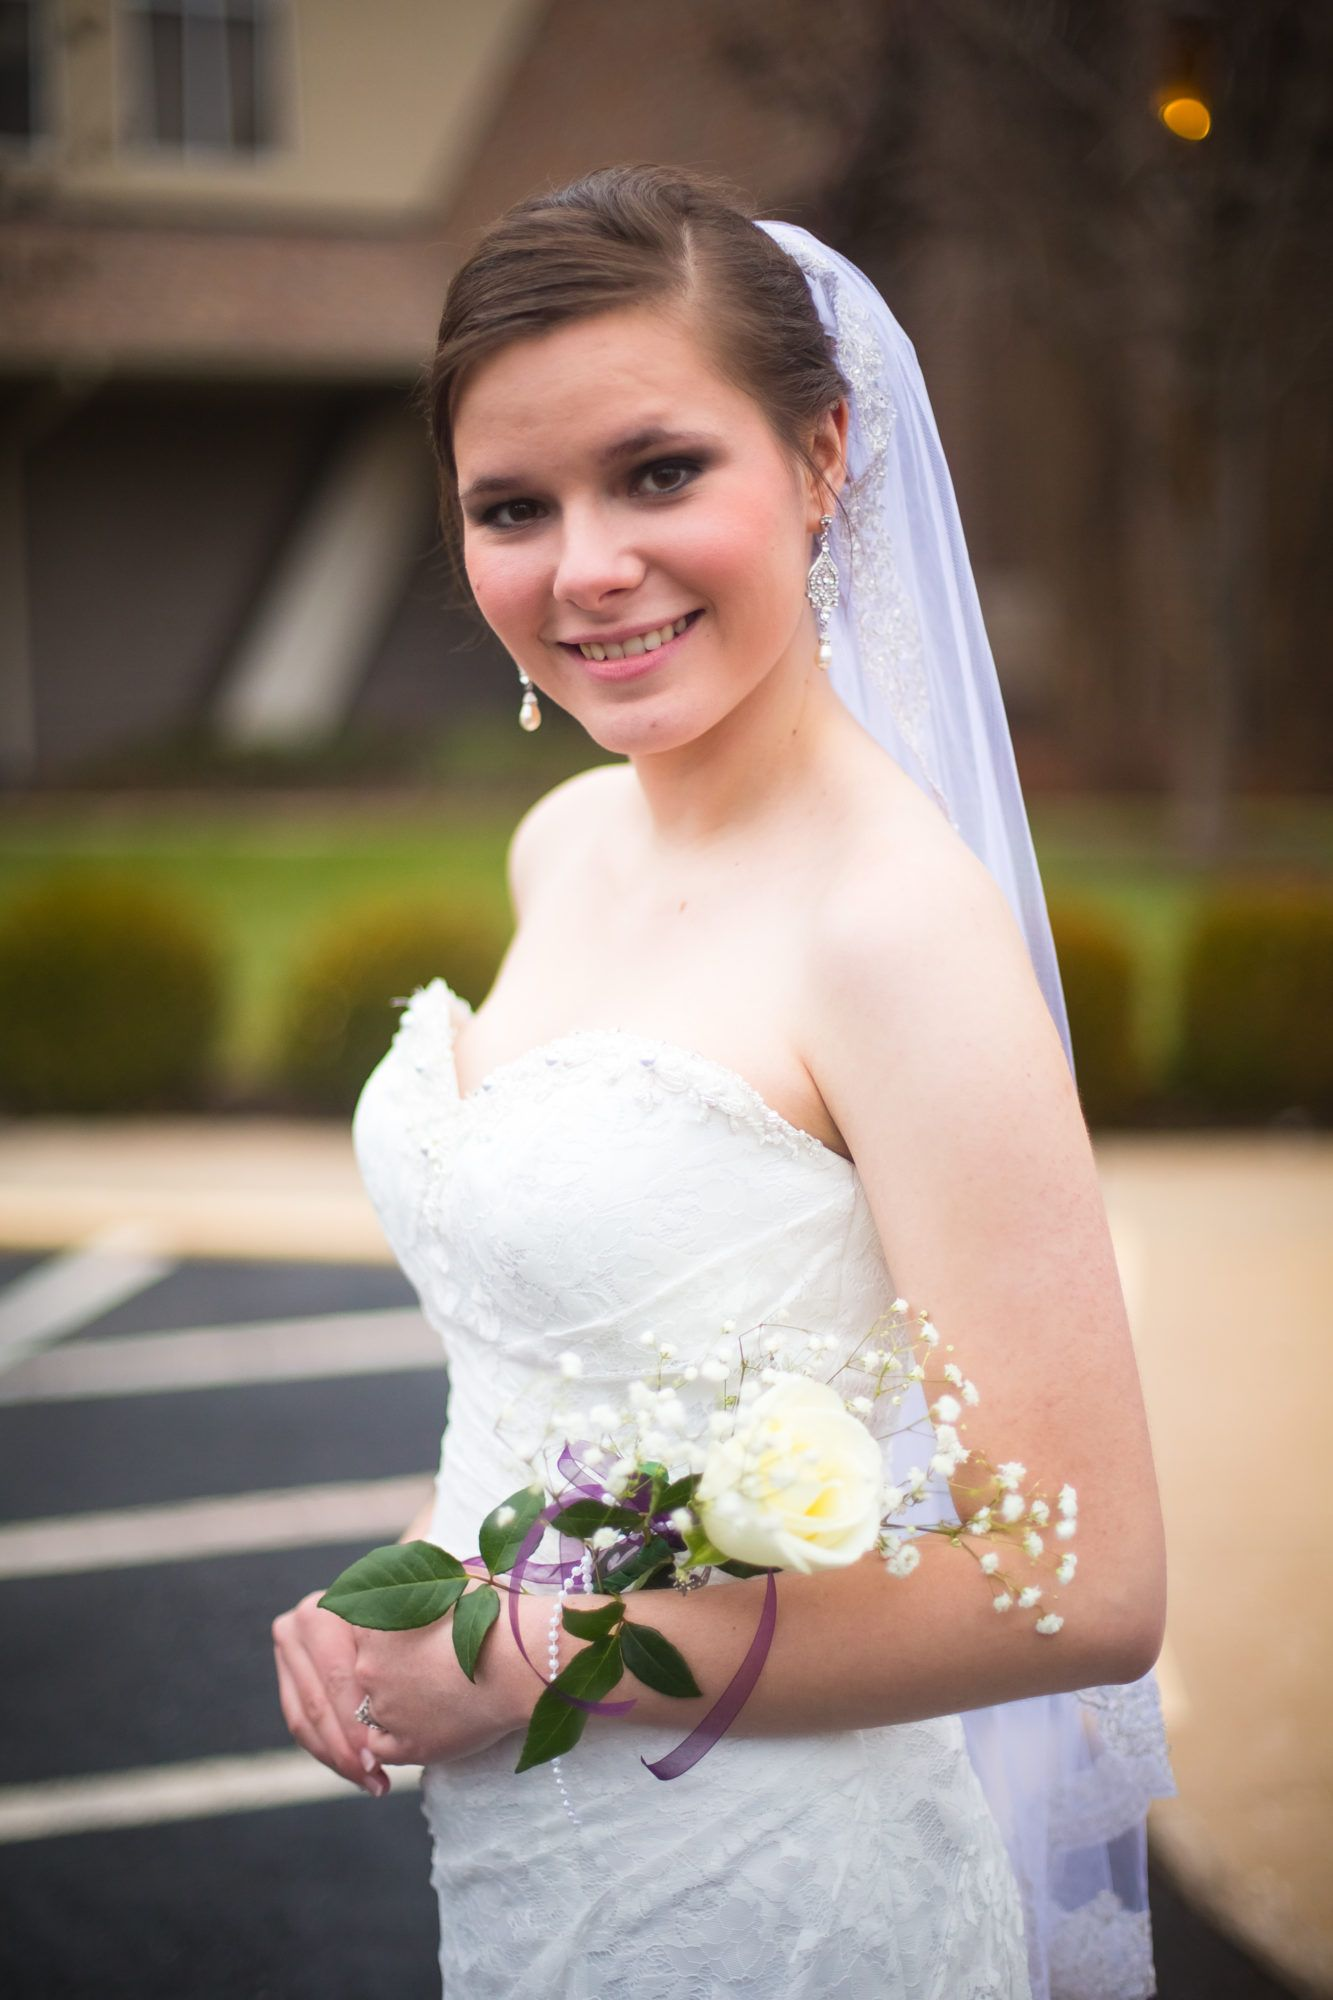 Wedding dresses springfield mo  Awesome Wedding Dresses In Springfield Mo Check more at